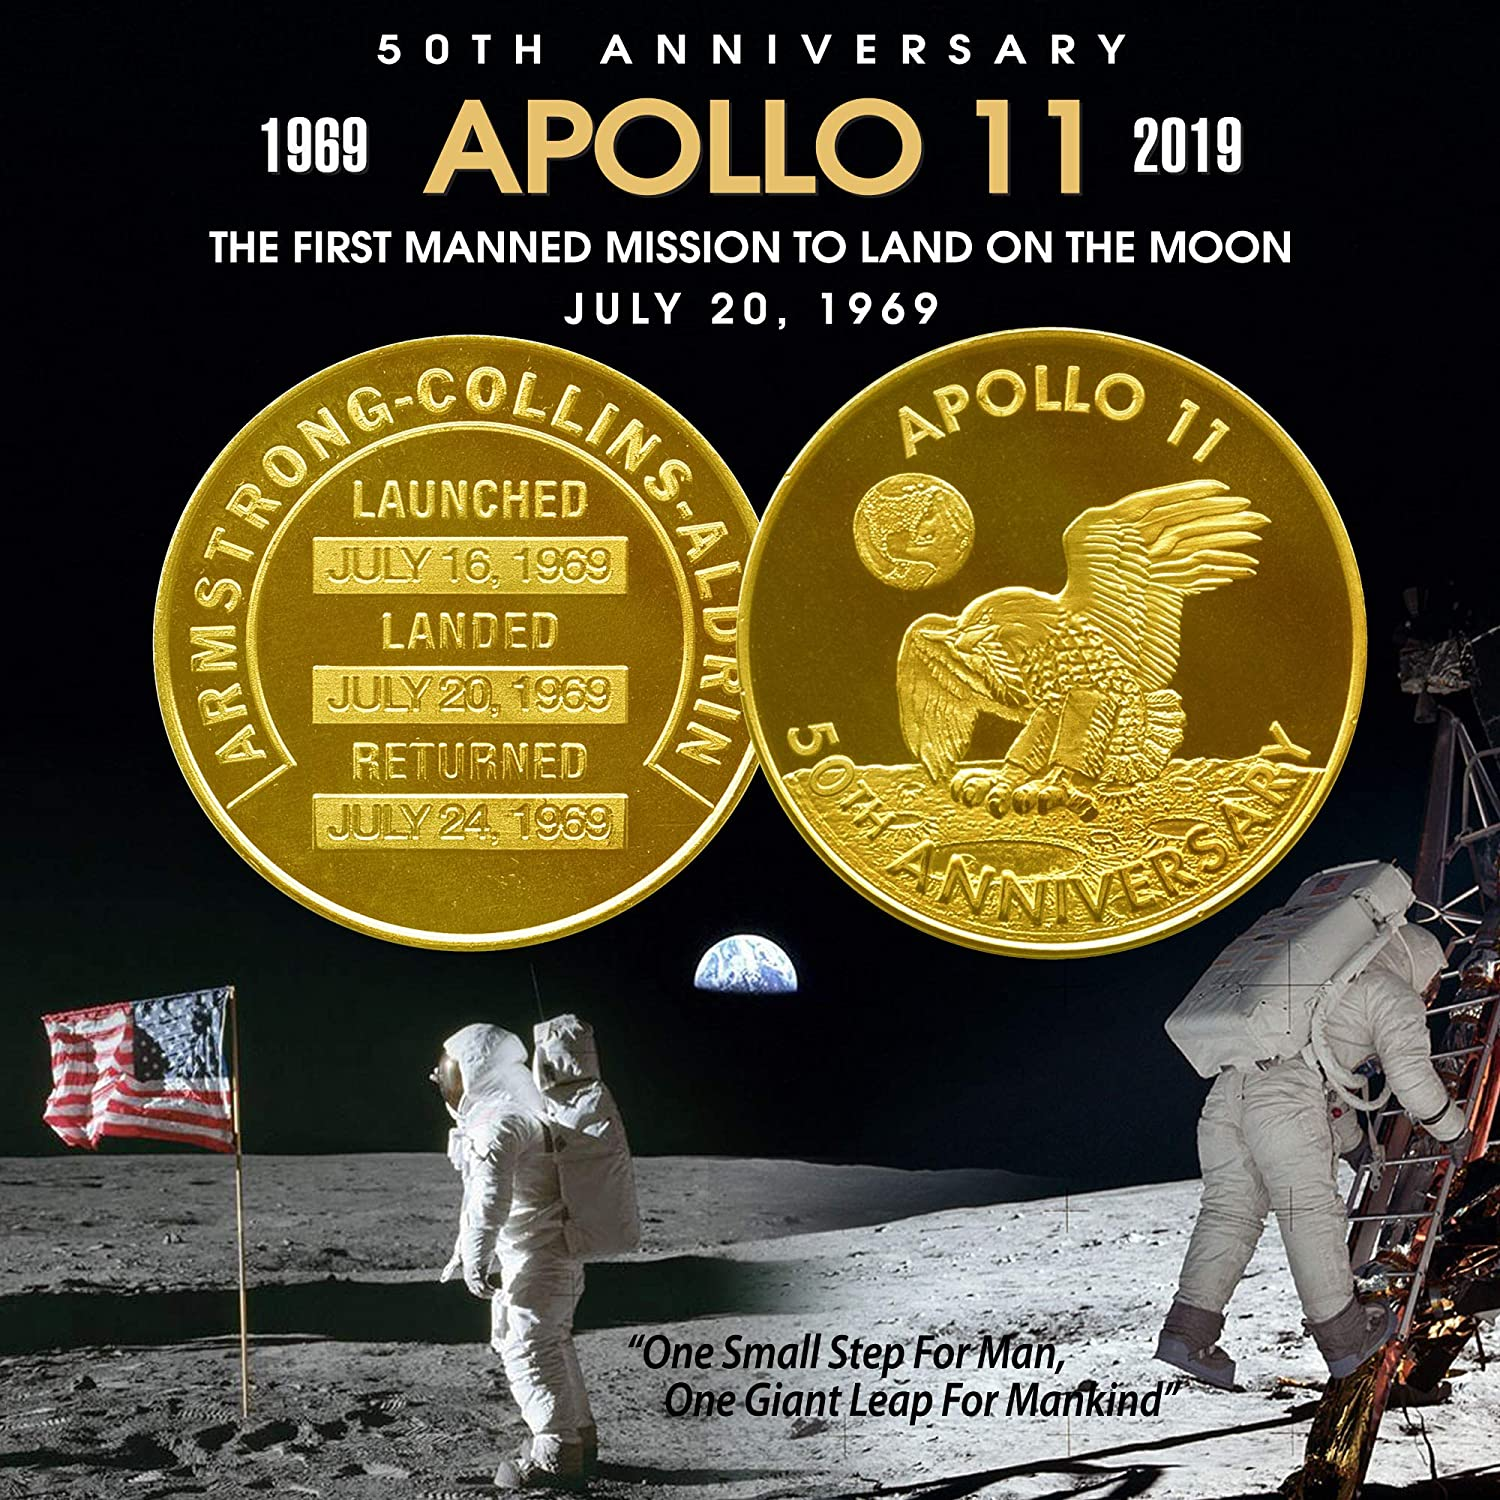 Amazon.com: Apollo 11 50th Anniversary Commemorative NASA ...